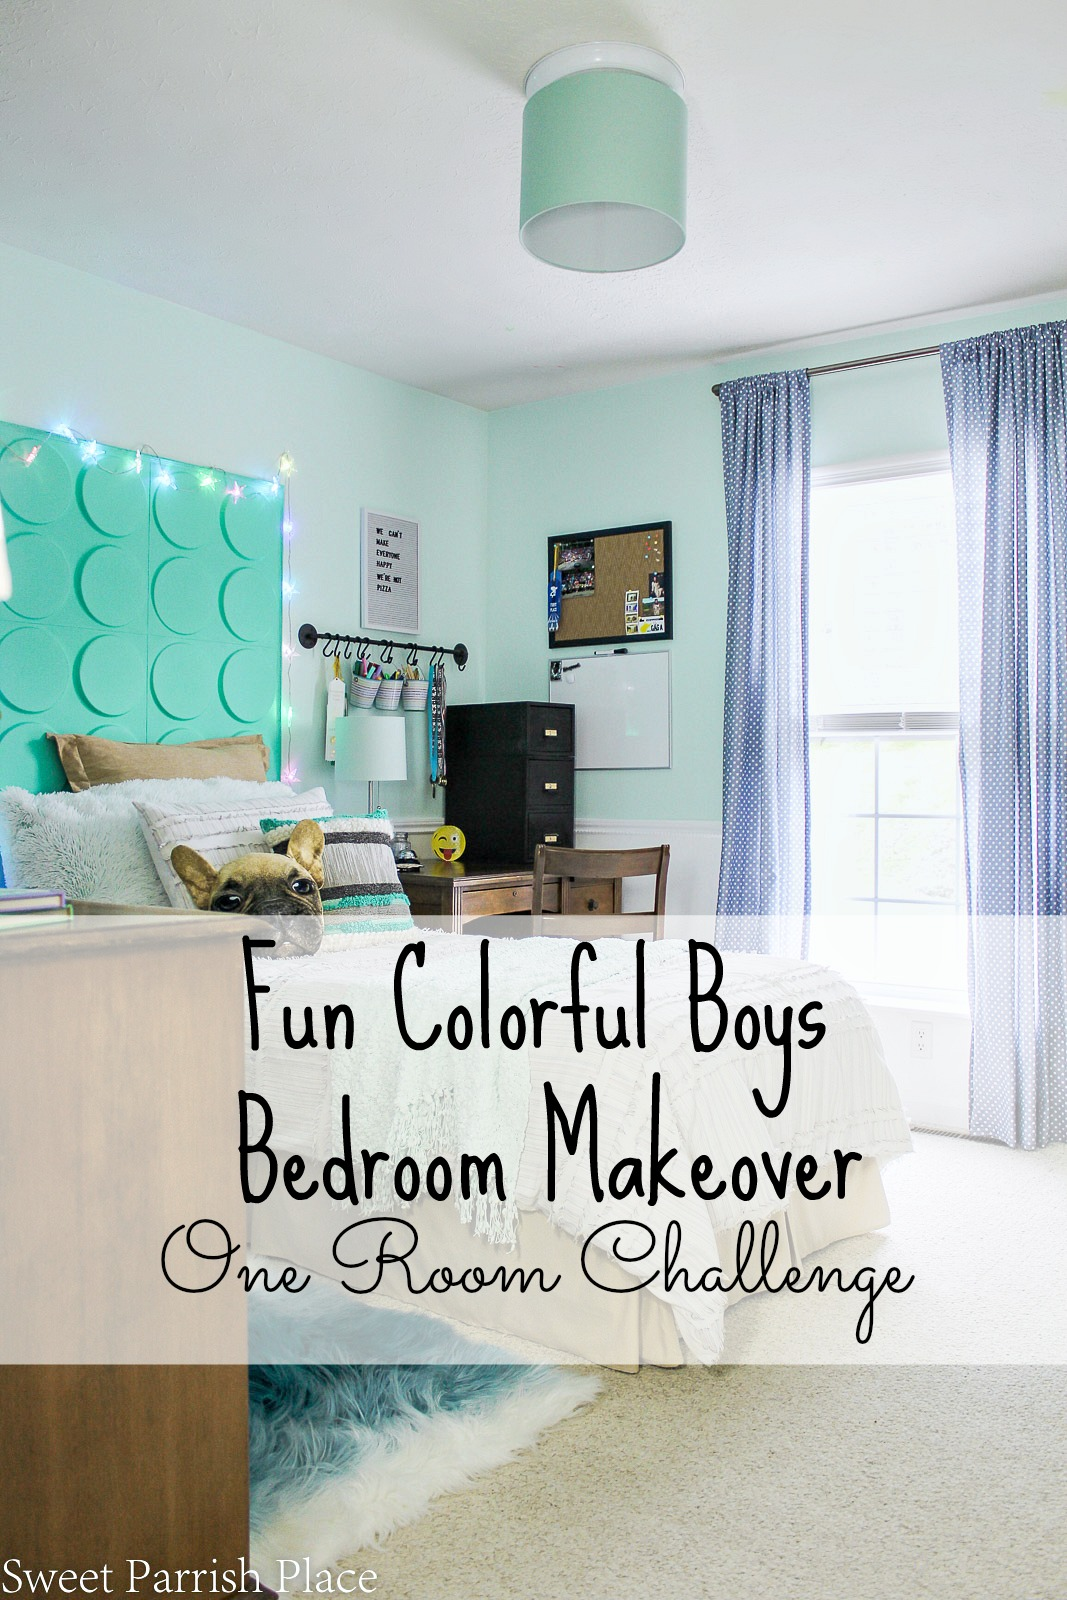 Boys Bedroom Makeover Reveal | One Room Challenge